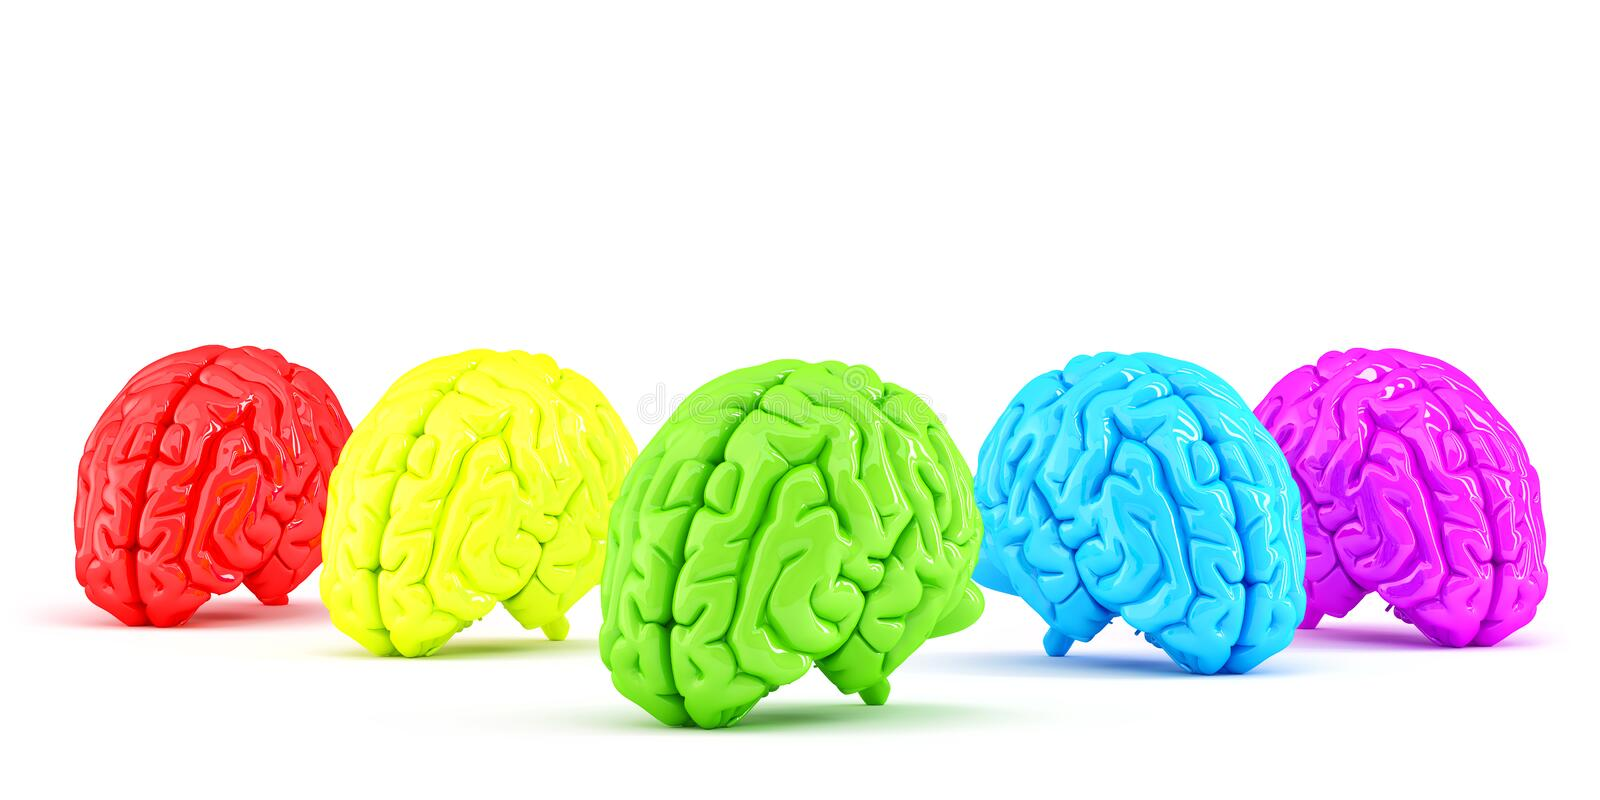 Colored human brains. Creative concept. Isolated. Contains clipping path royalty free illustration